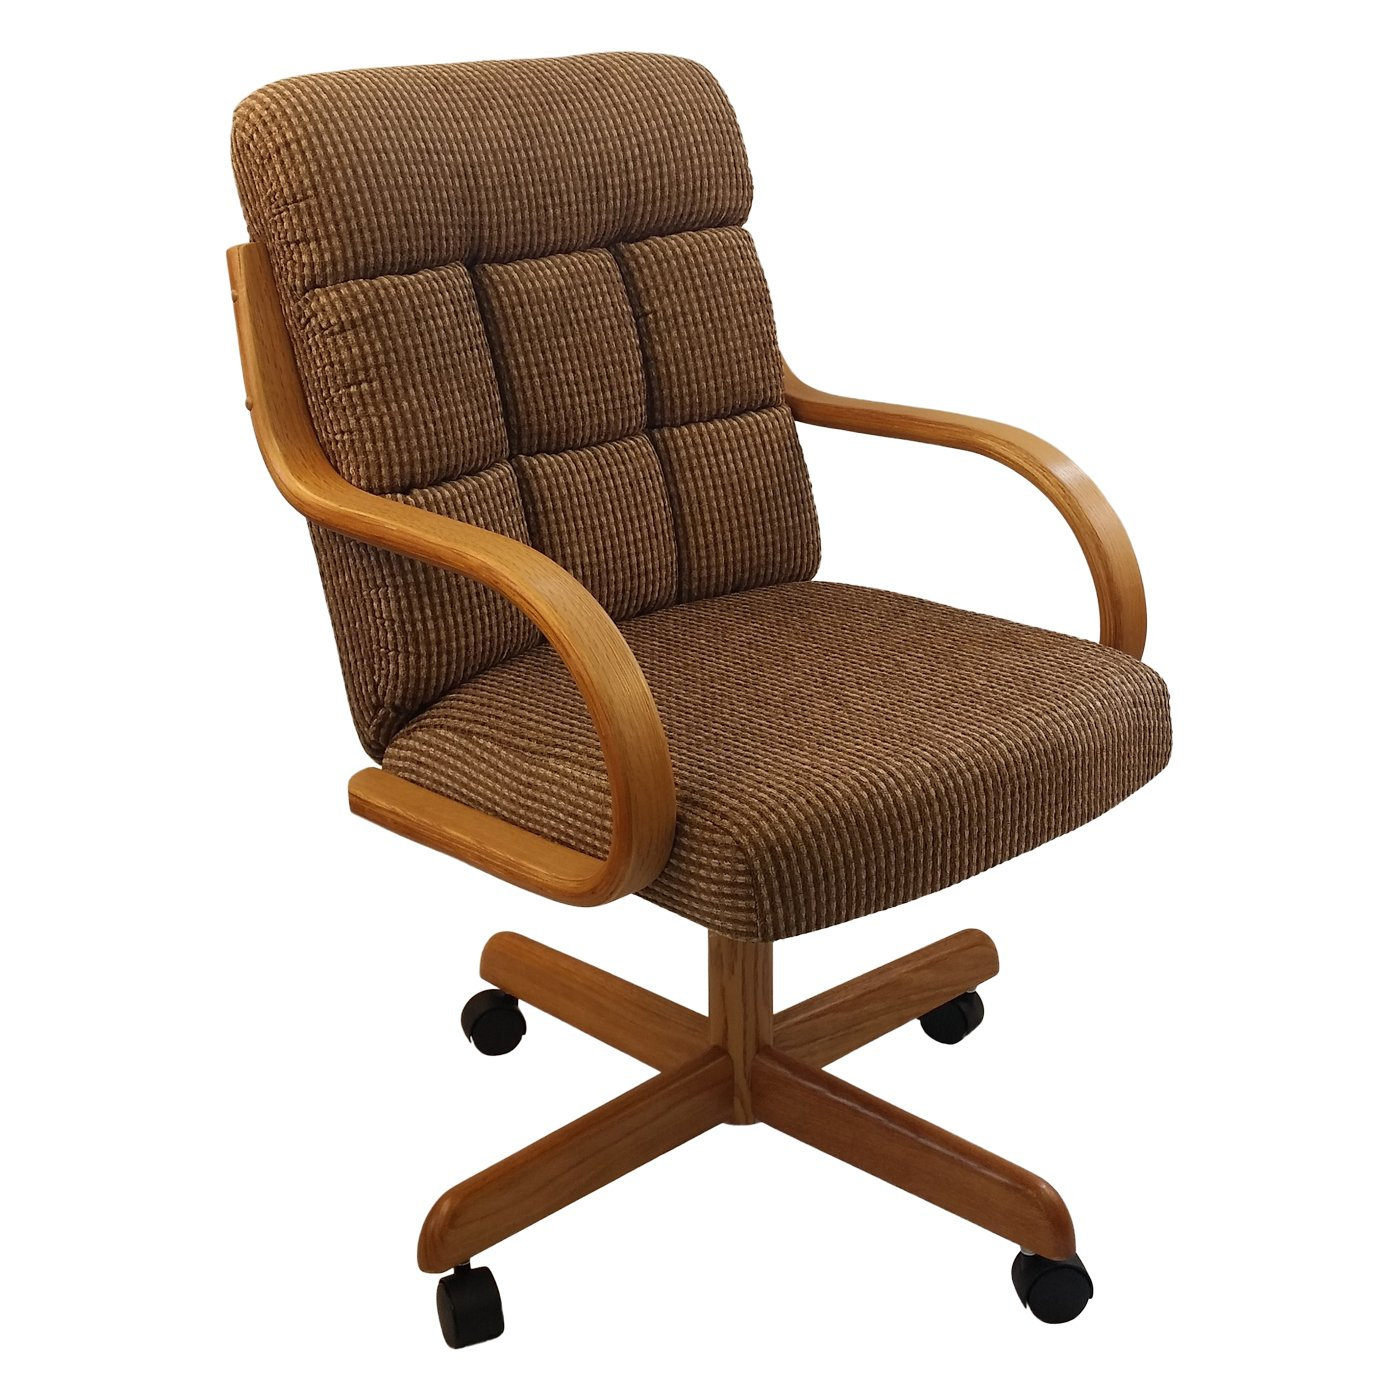 Dining Room Chairs On Casters: Casual Rolling Caster Dining Chair With Swivel Tilt In Oak